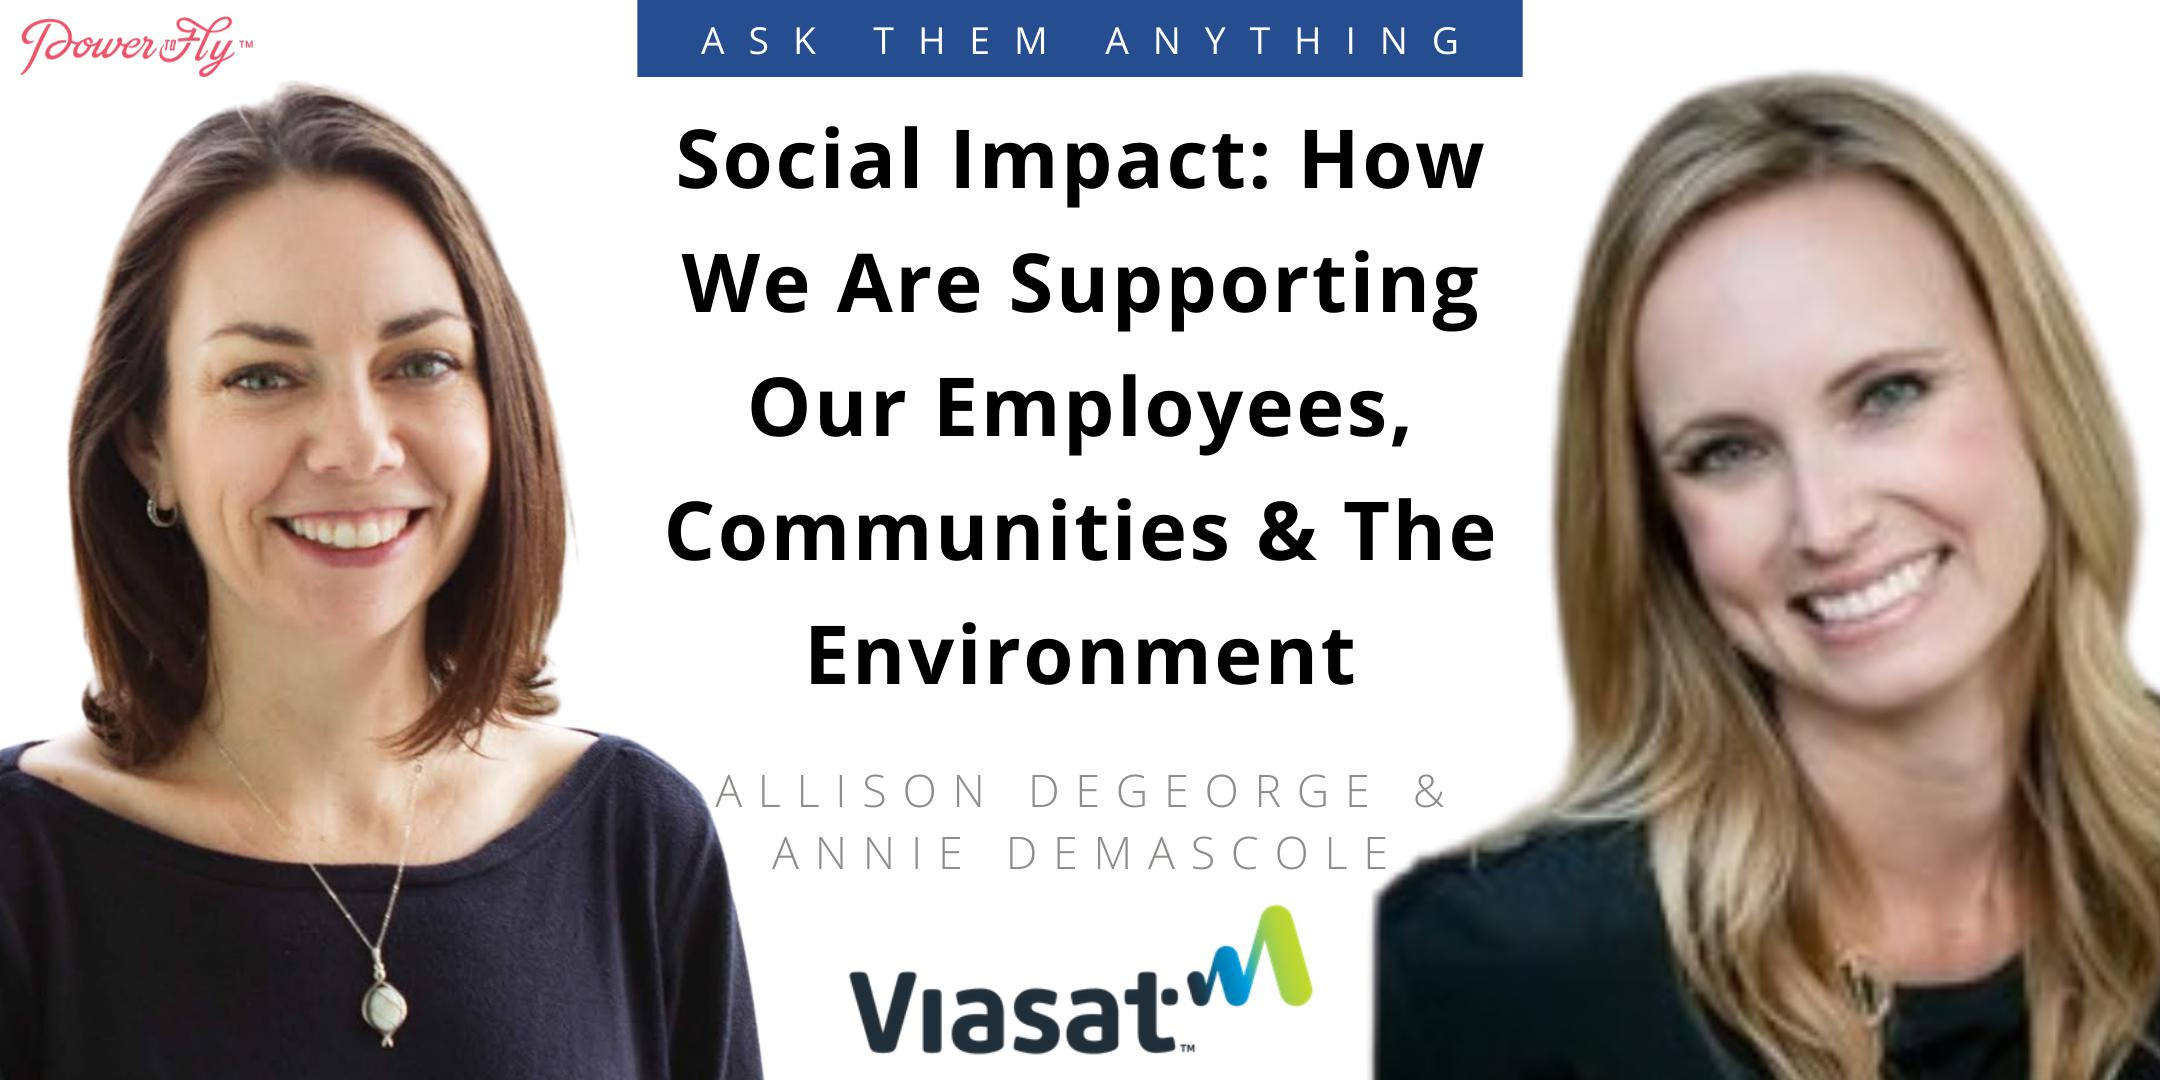 Social Impact: How We Are Supporting Our Employees, Communities & The Environment